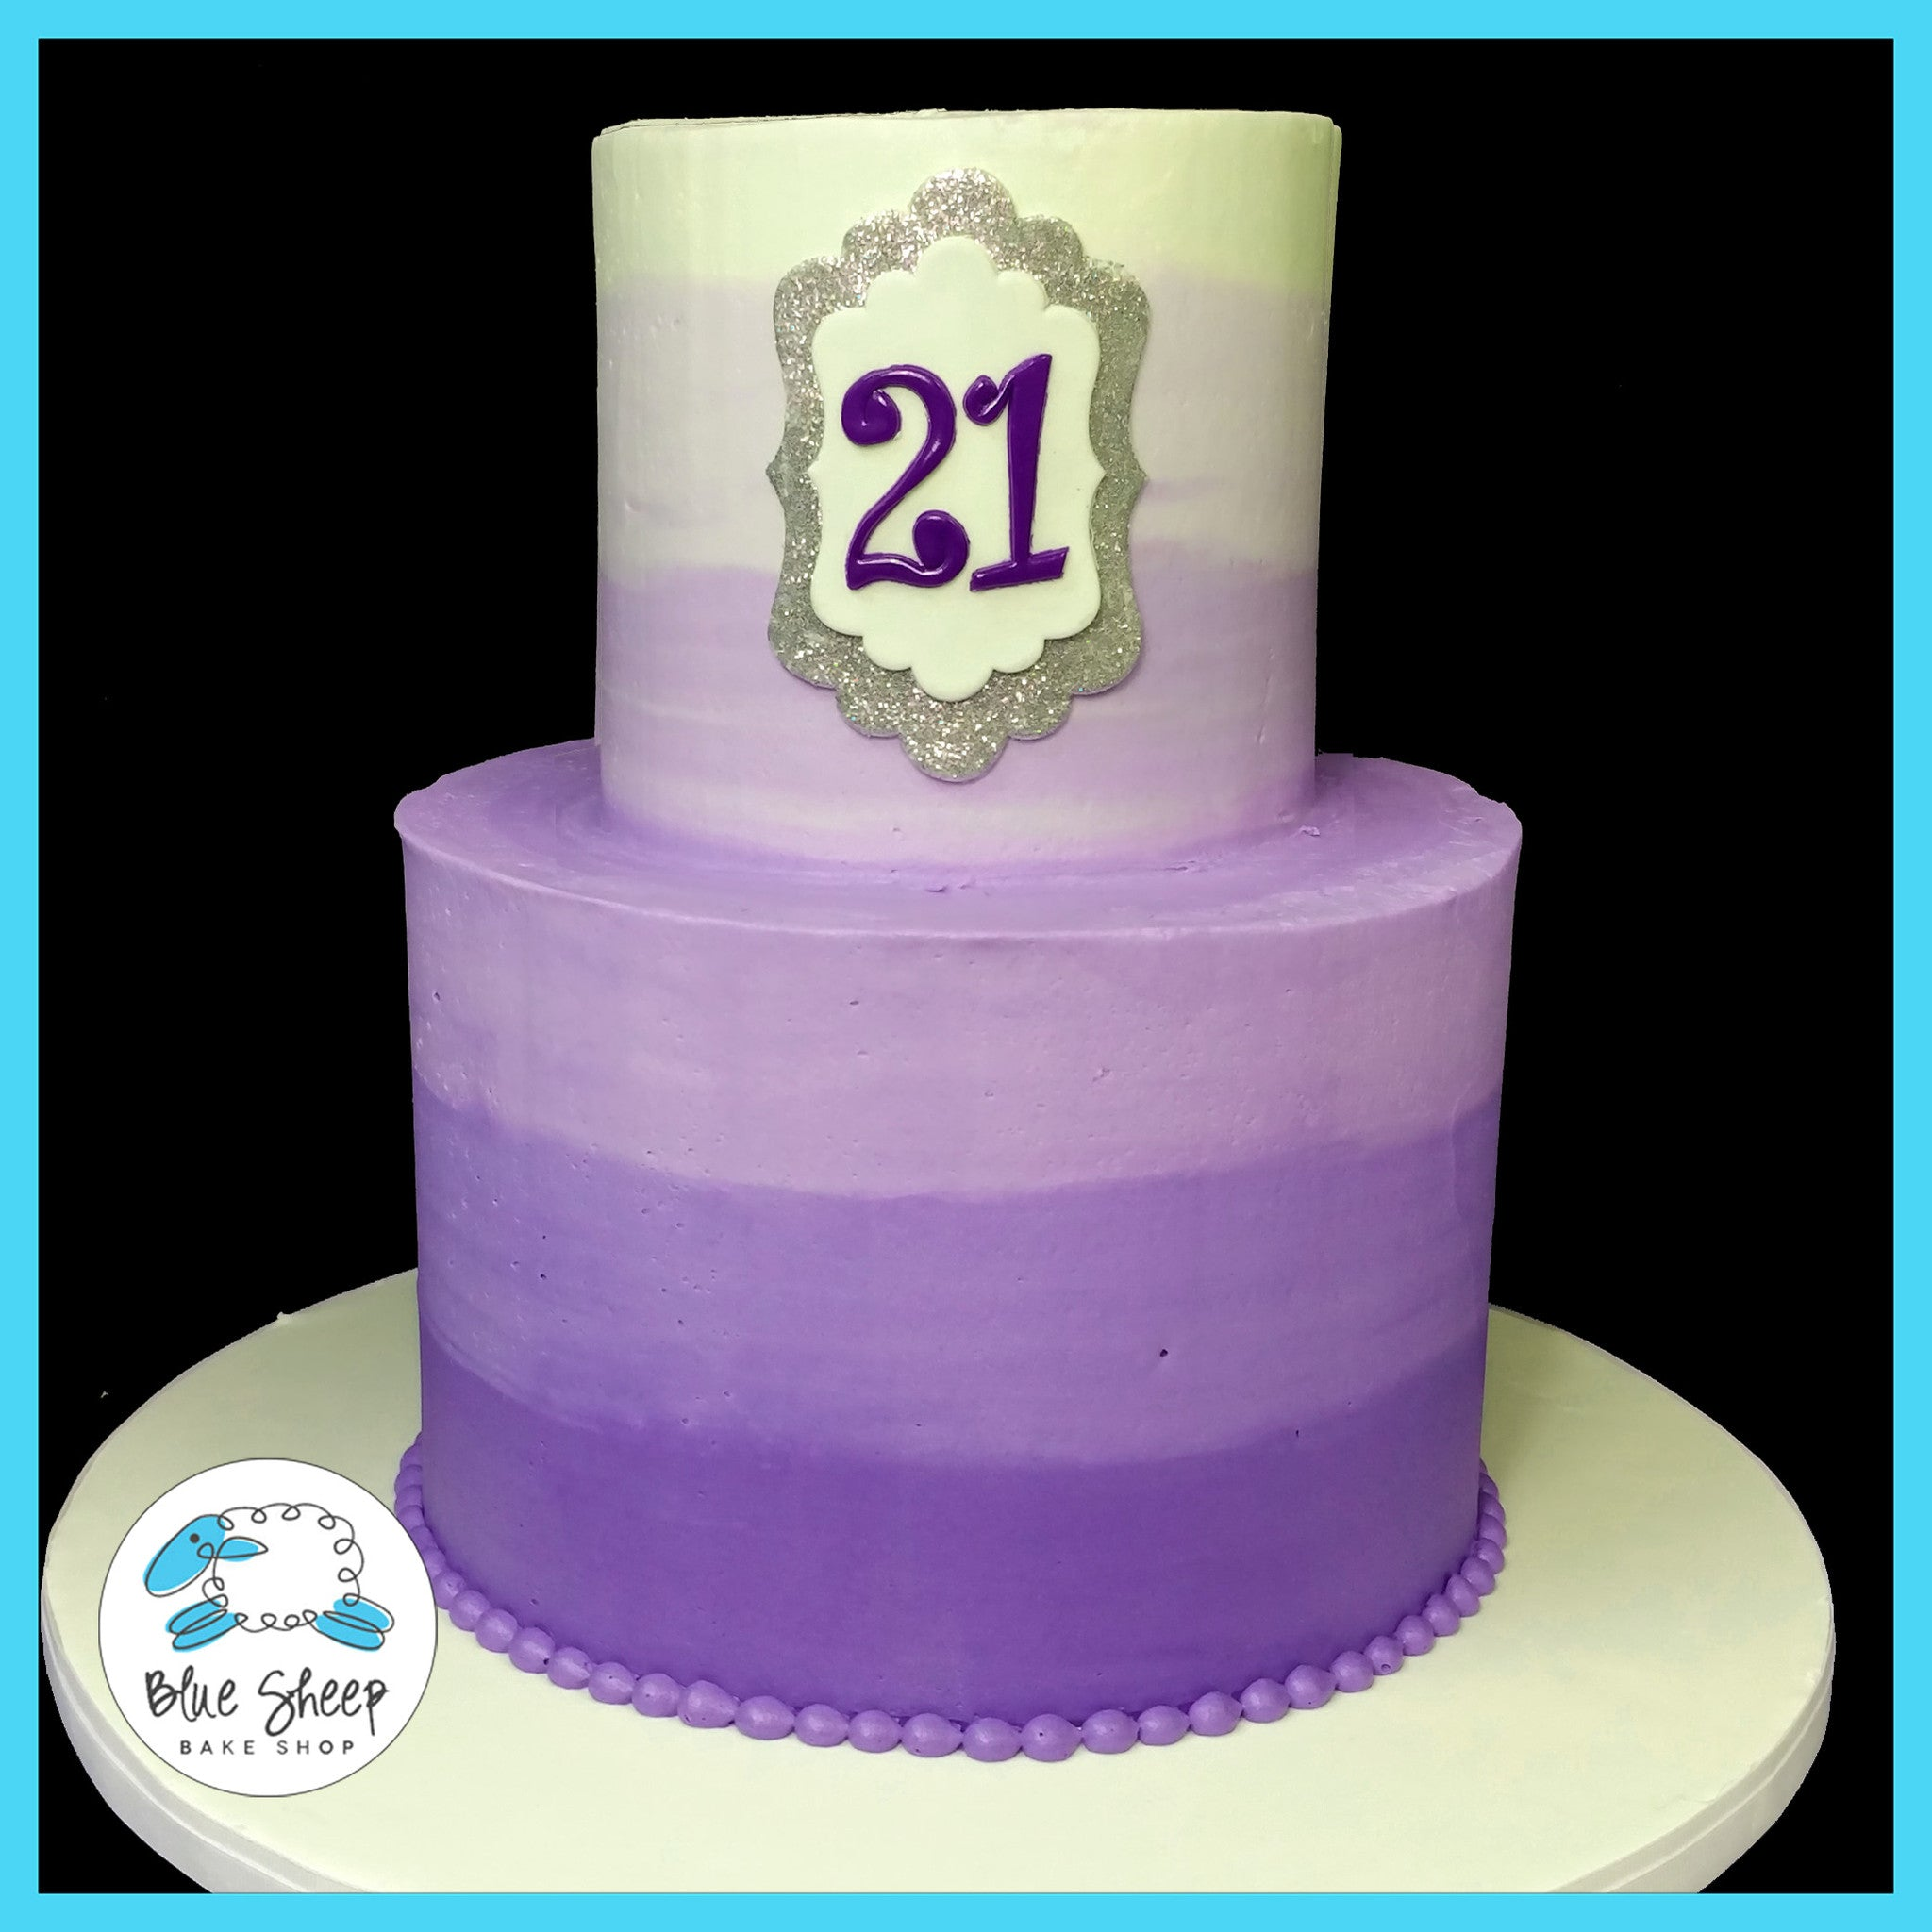 Fabulous Purple Ombre 21St Birthday Cake Nj Blue Sheep Bake Shop Birthday Cards Printable Nowaargucafe Filternl